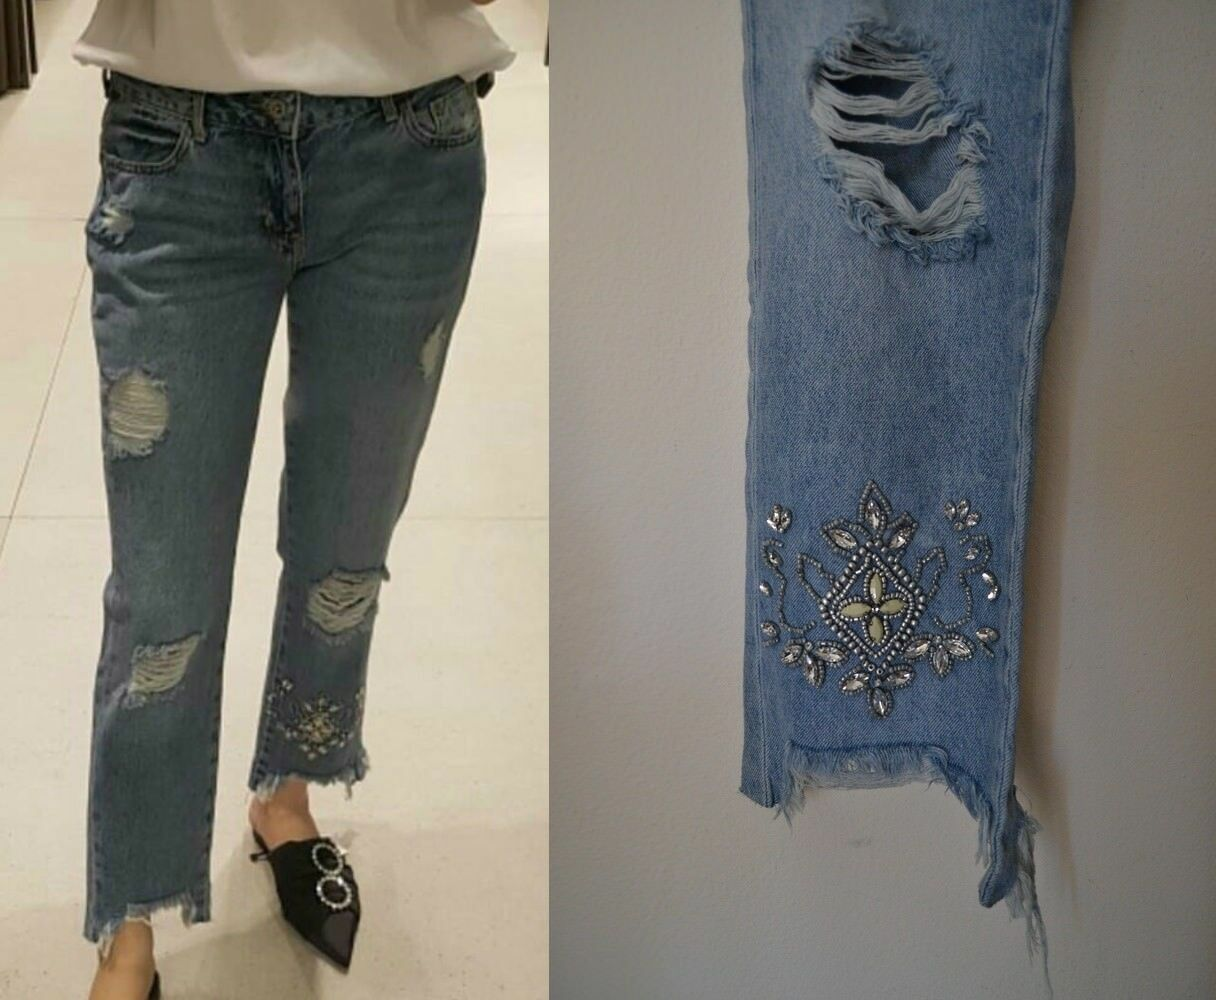 ZARA WOMAN SS17 MID-blueE EMBROIDERED BEJEWELLED JEANS REF 6164 180 SIZE